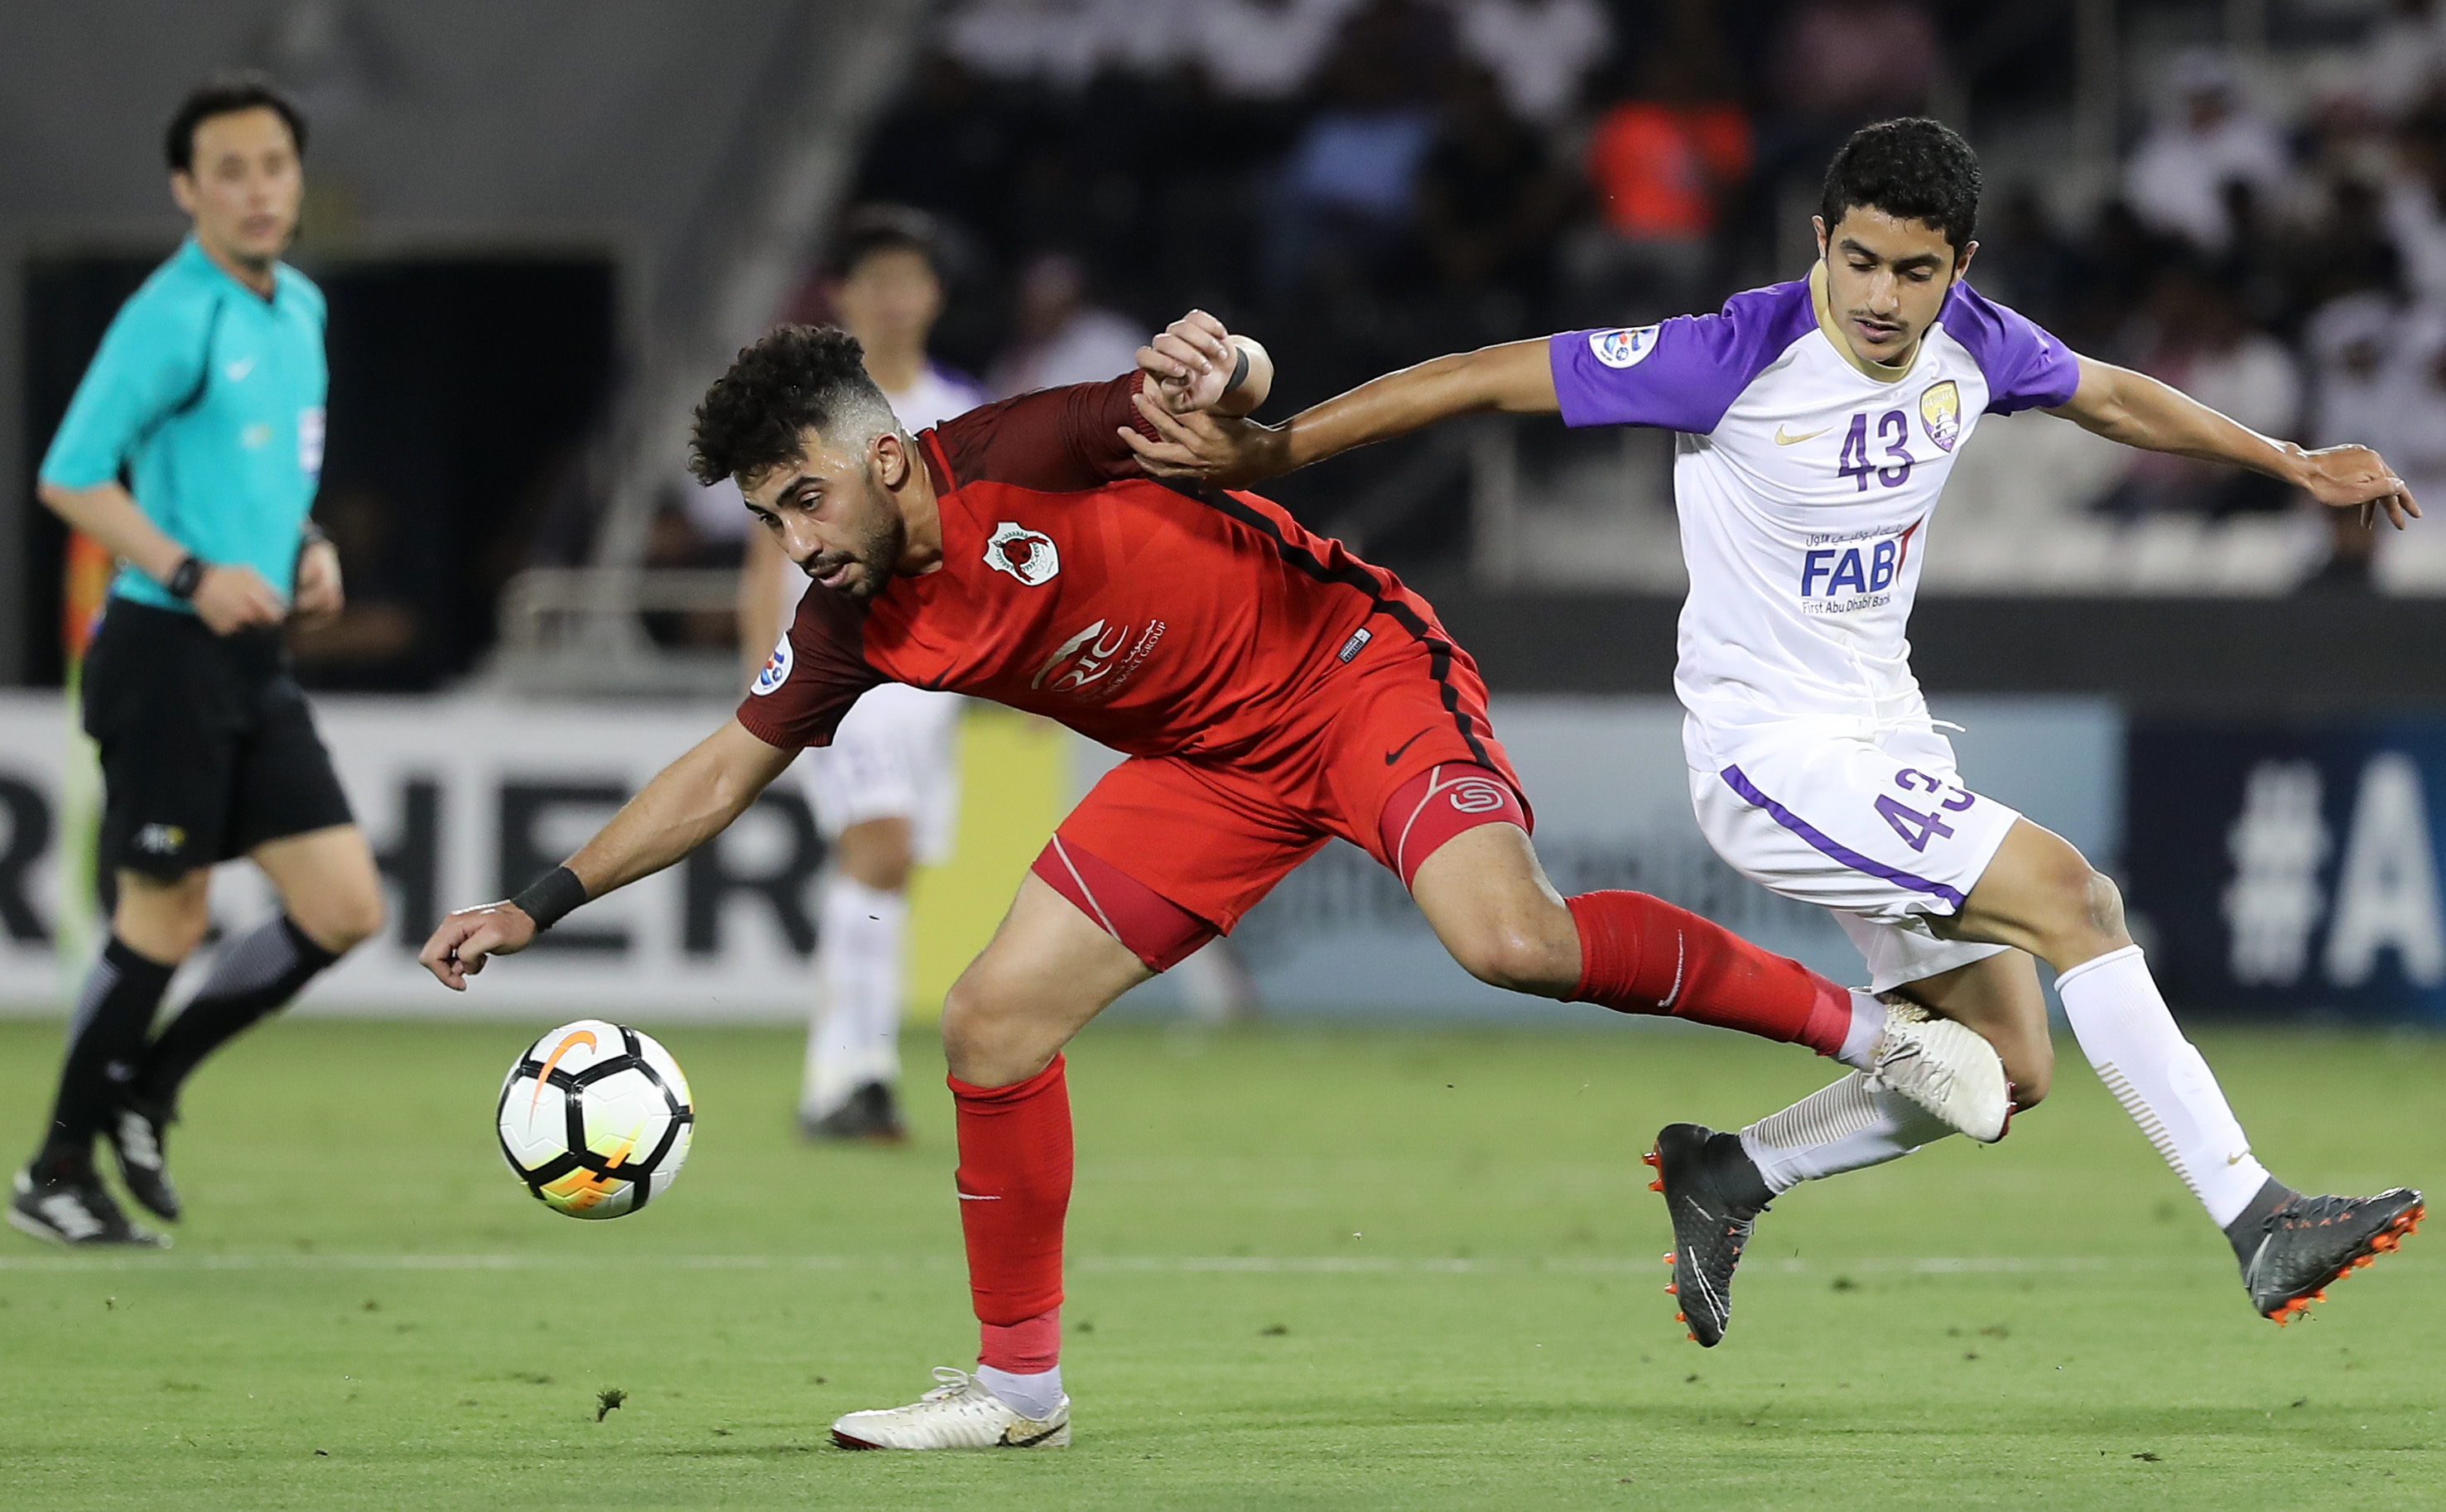 The future: Rayan Yaslam in action for Al Ain.